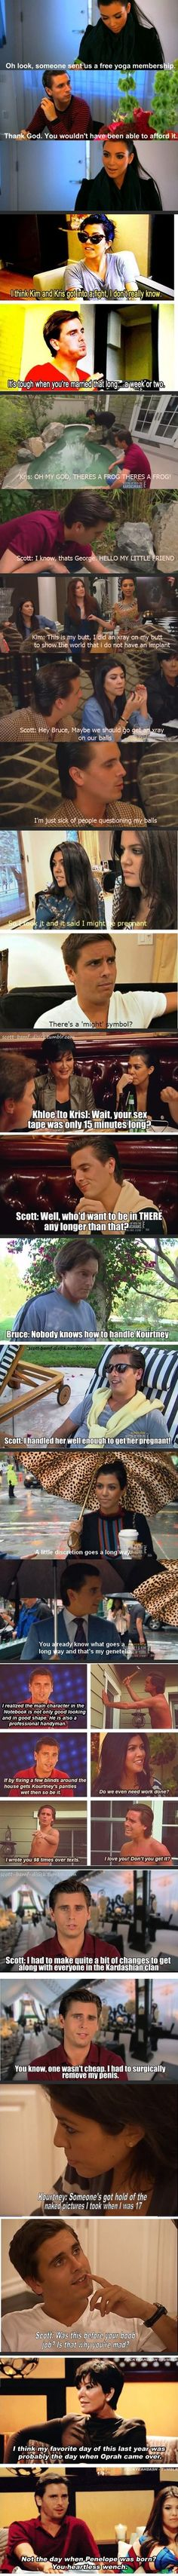 Scott Disick deserves a show of his own. Get this man a show already. I LOVE HIM